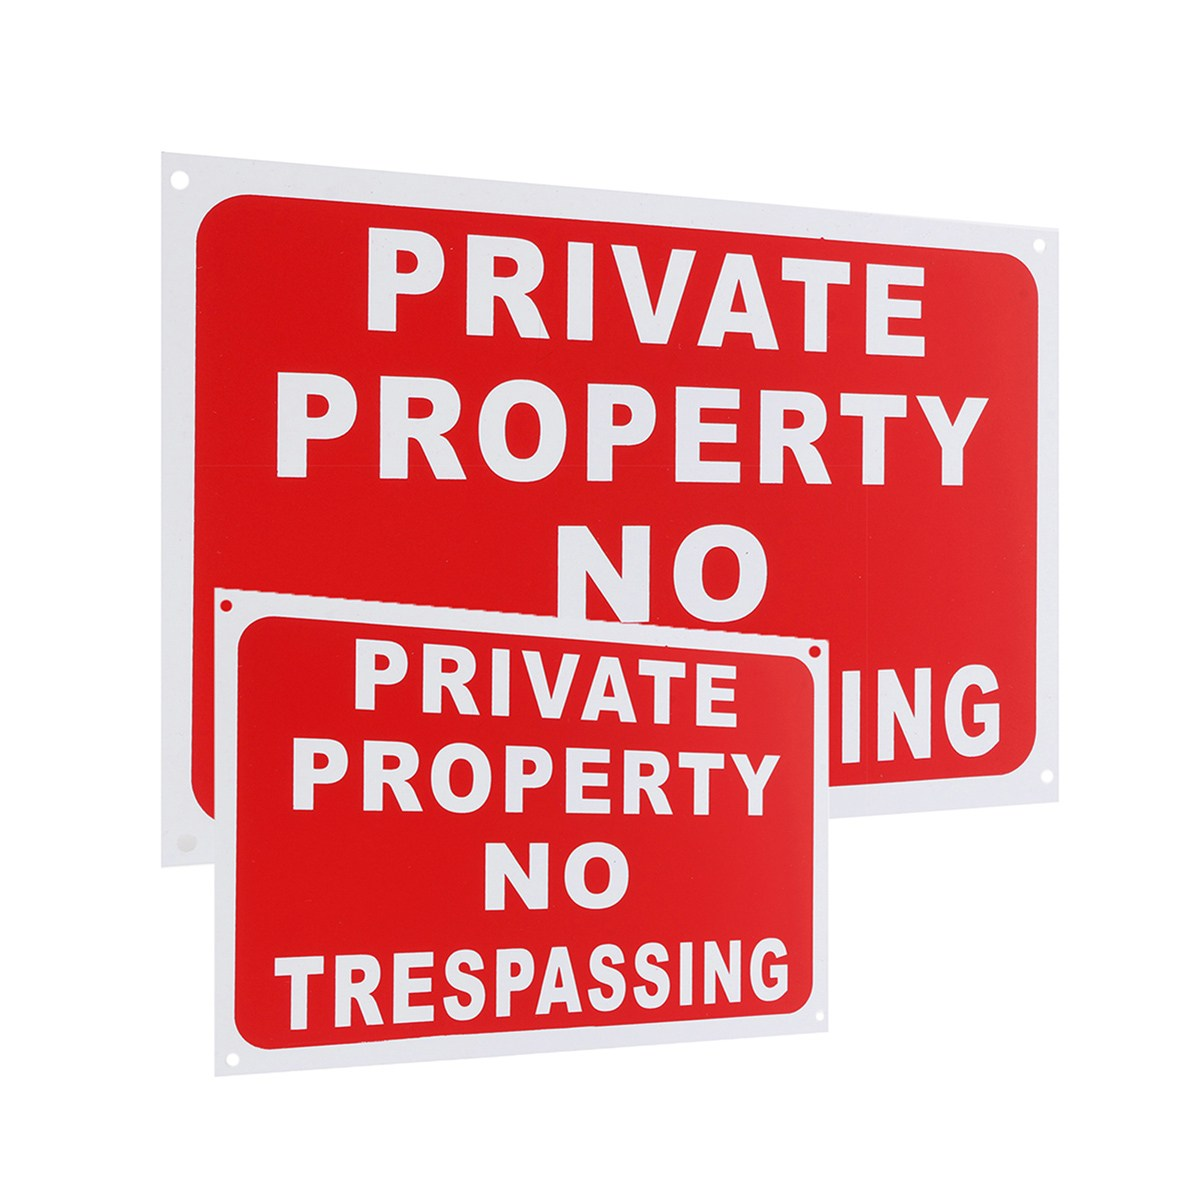 NEW Private Property No Trespassing Plastic Stickers Security Signs Decal 2 Sizes  Workplace Safety Warning